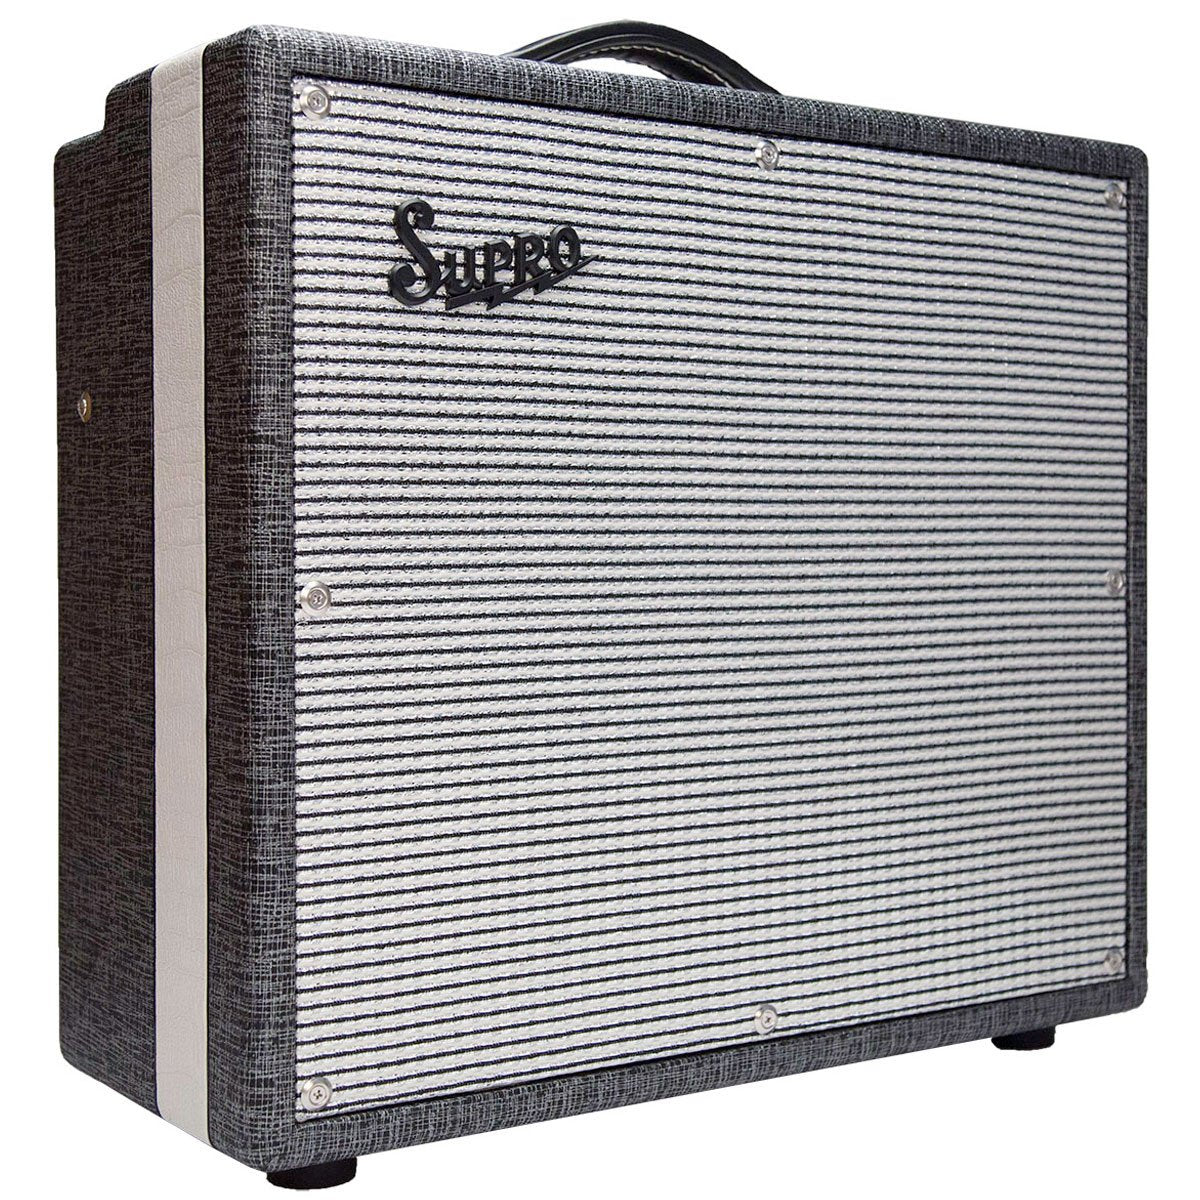 Used Supro - 1695T - Black Magick 1x12 Tube Amplifier - 240V